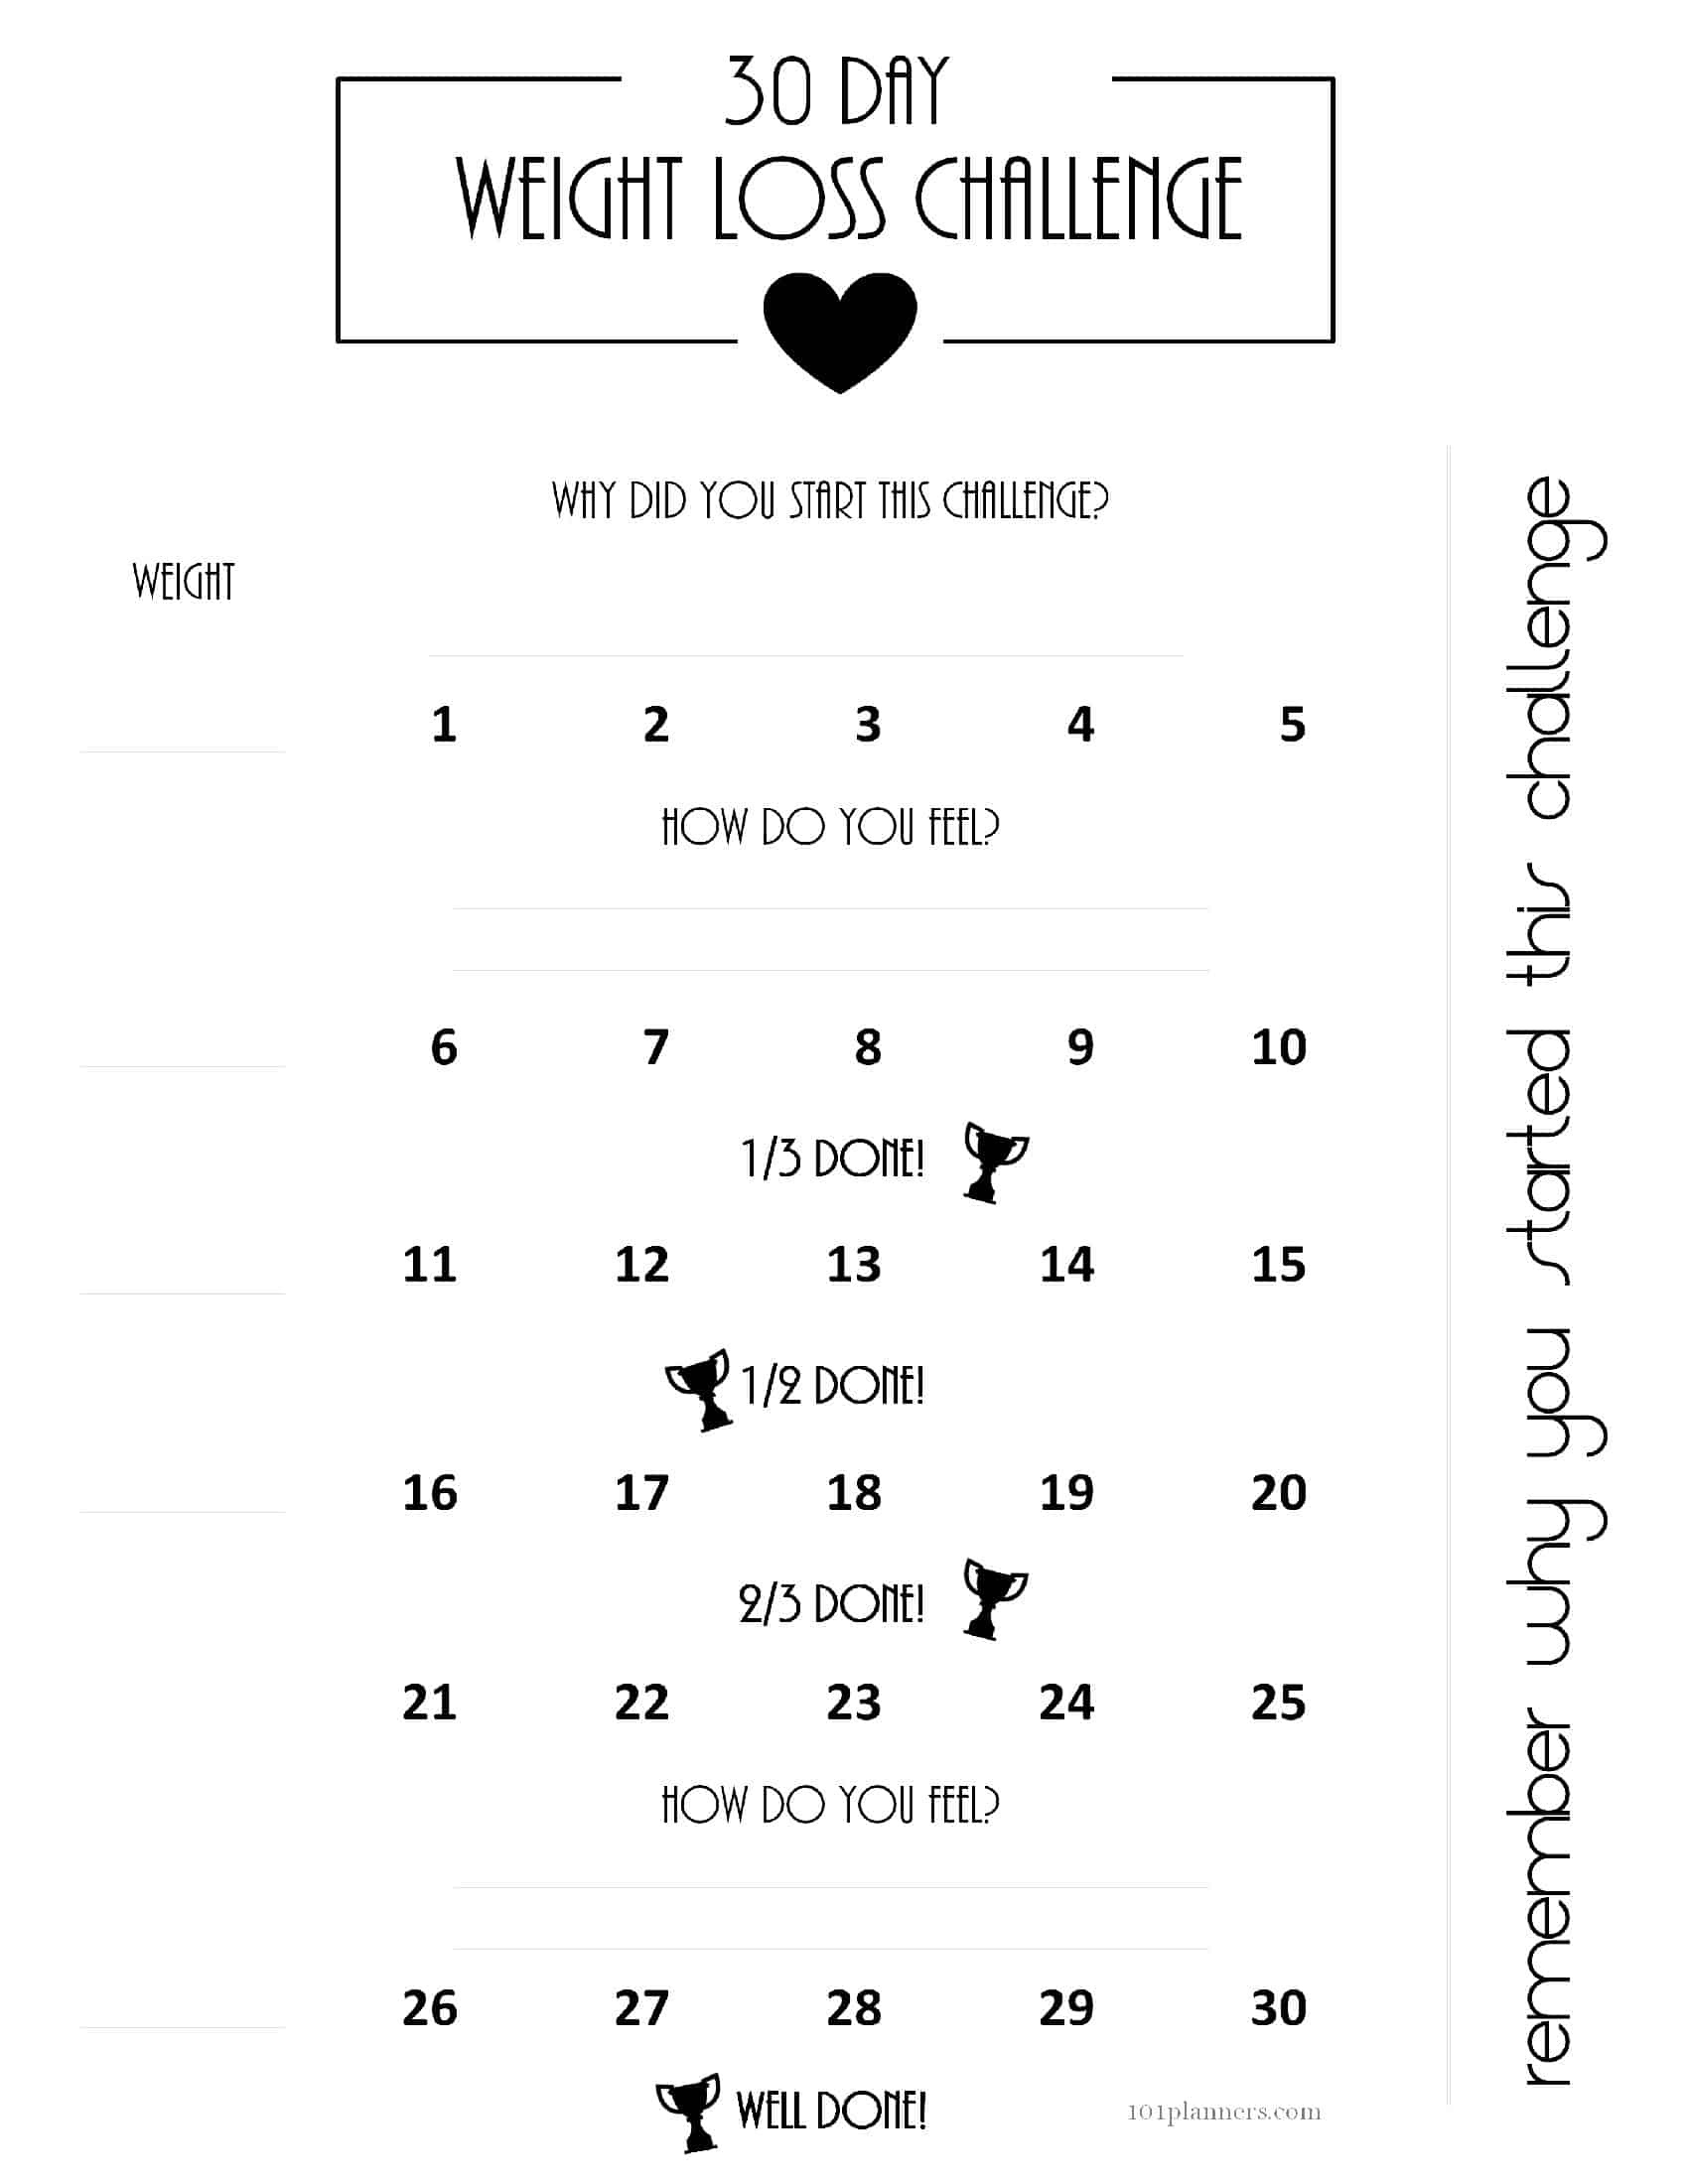 30 Day Weight Loss Challenge Ideas With Free Printables_Countdown Calendar For Weight Loss